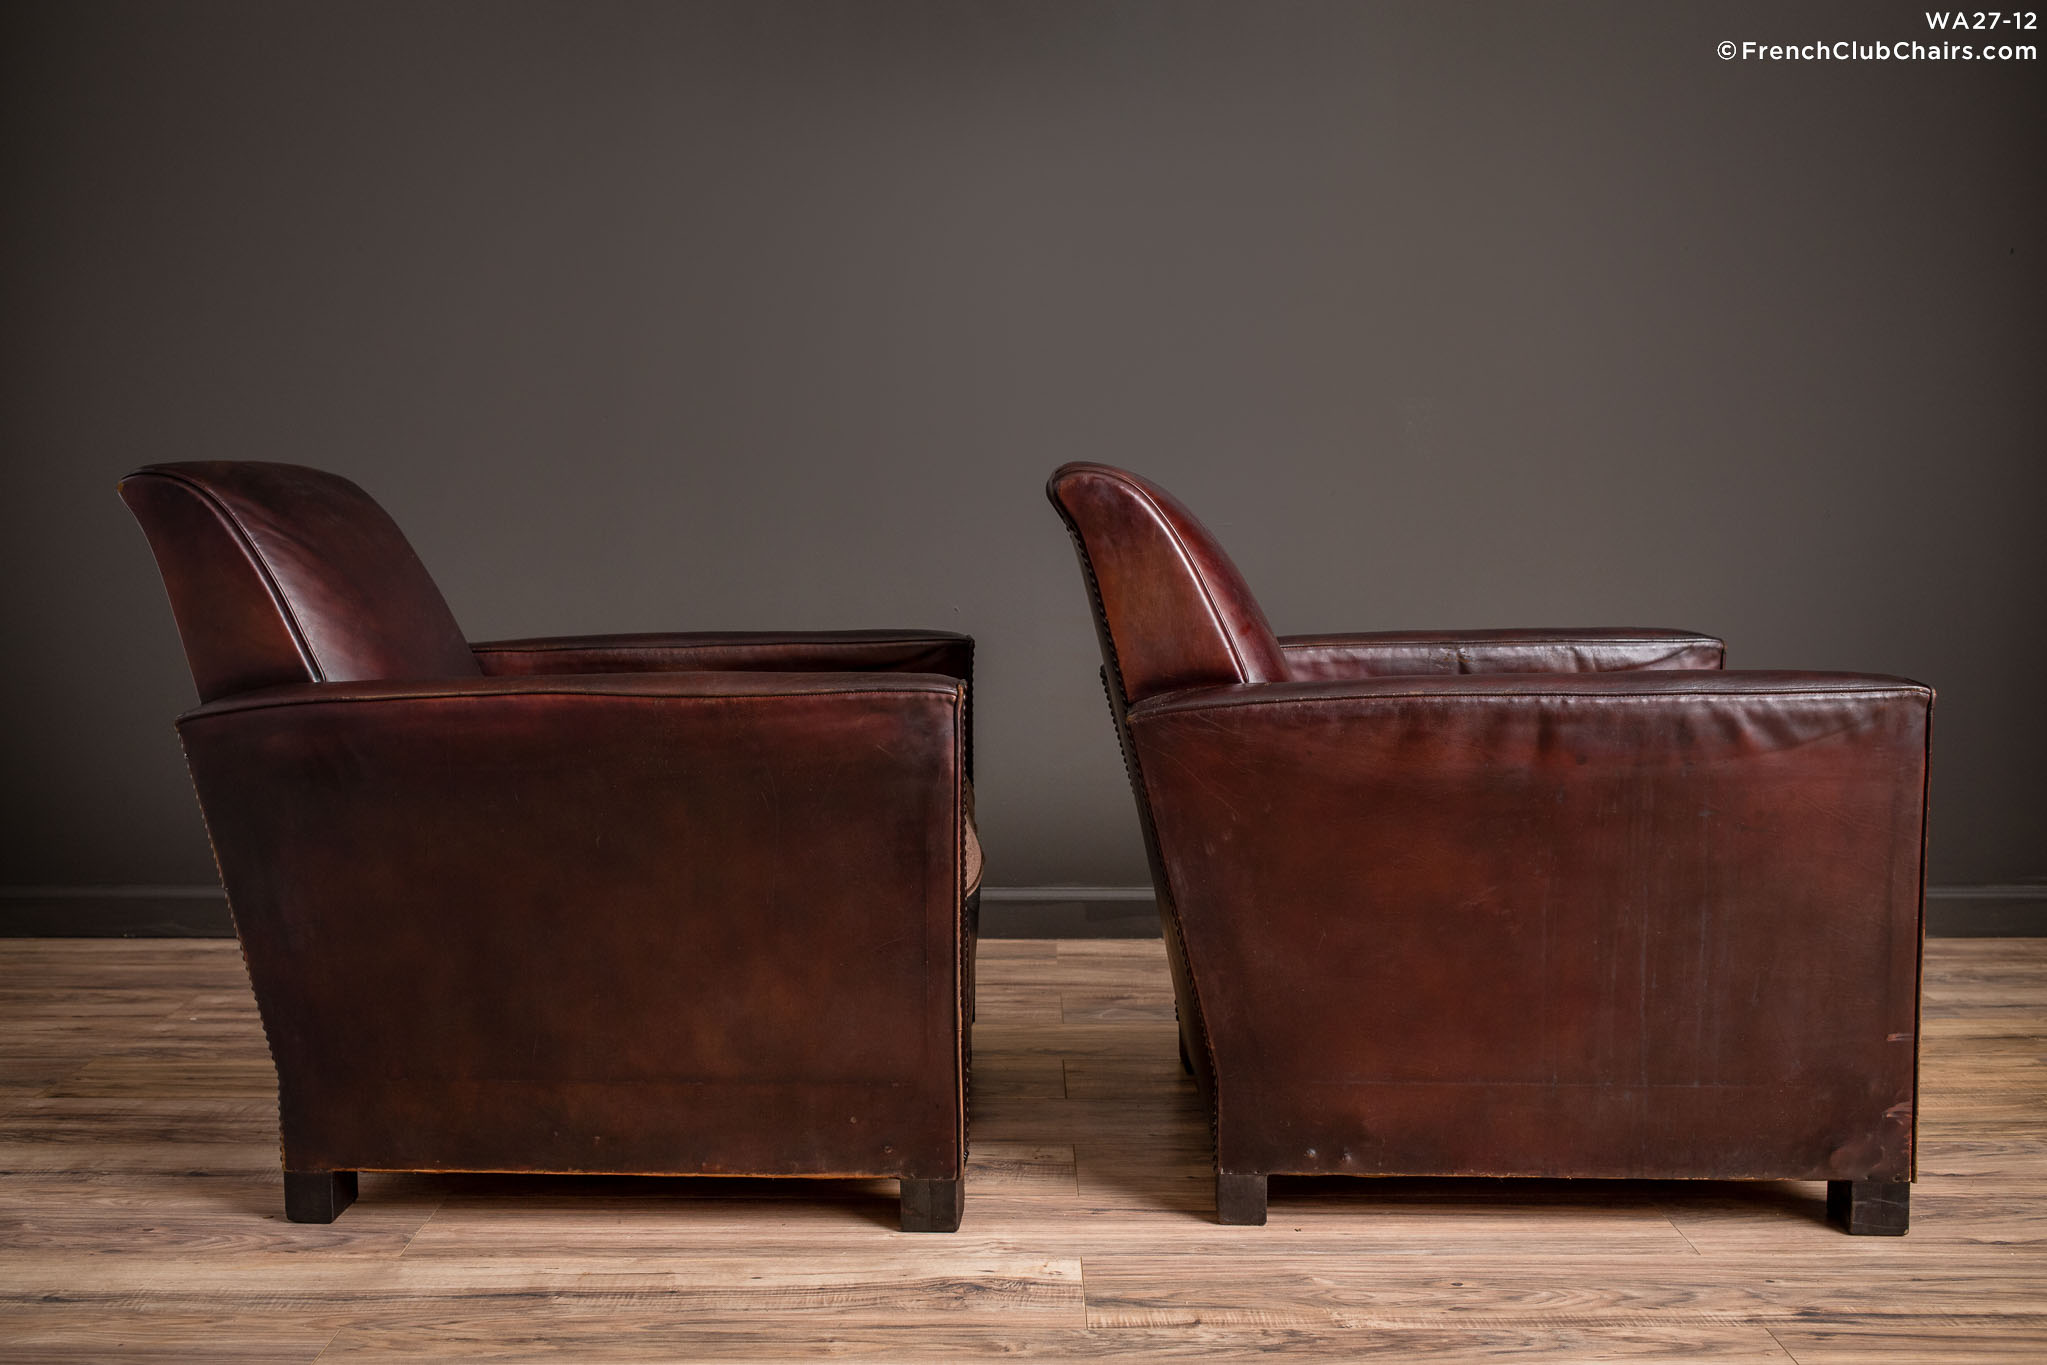 WA_27-12_St_Tropez_Dark_Lounge_Square_Pair_R_3RT-v01-williams-antiks-leather-french-club-chair-wa_fcccom